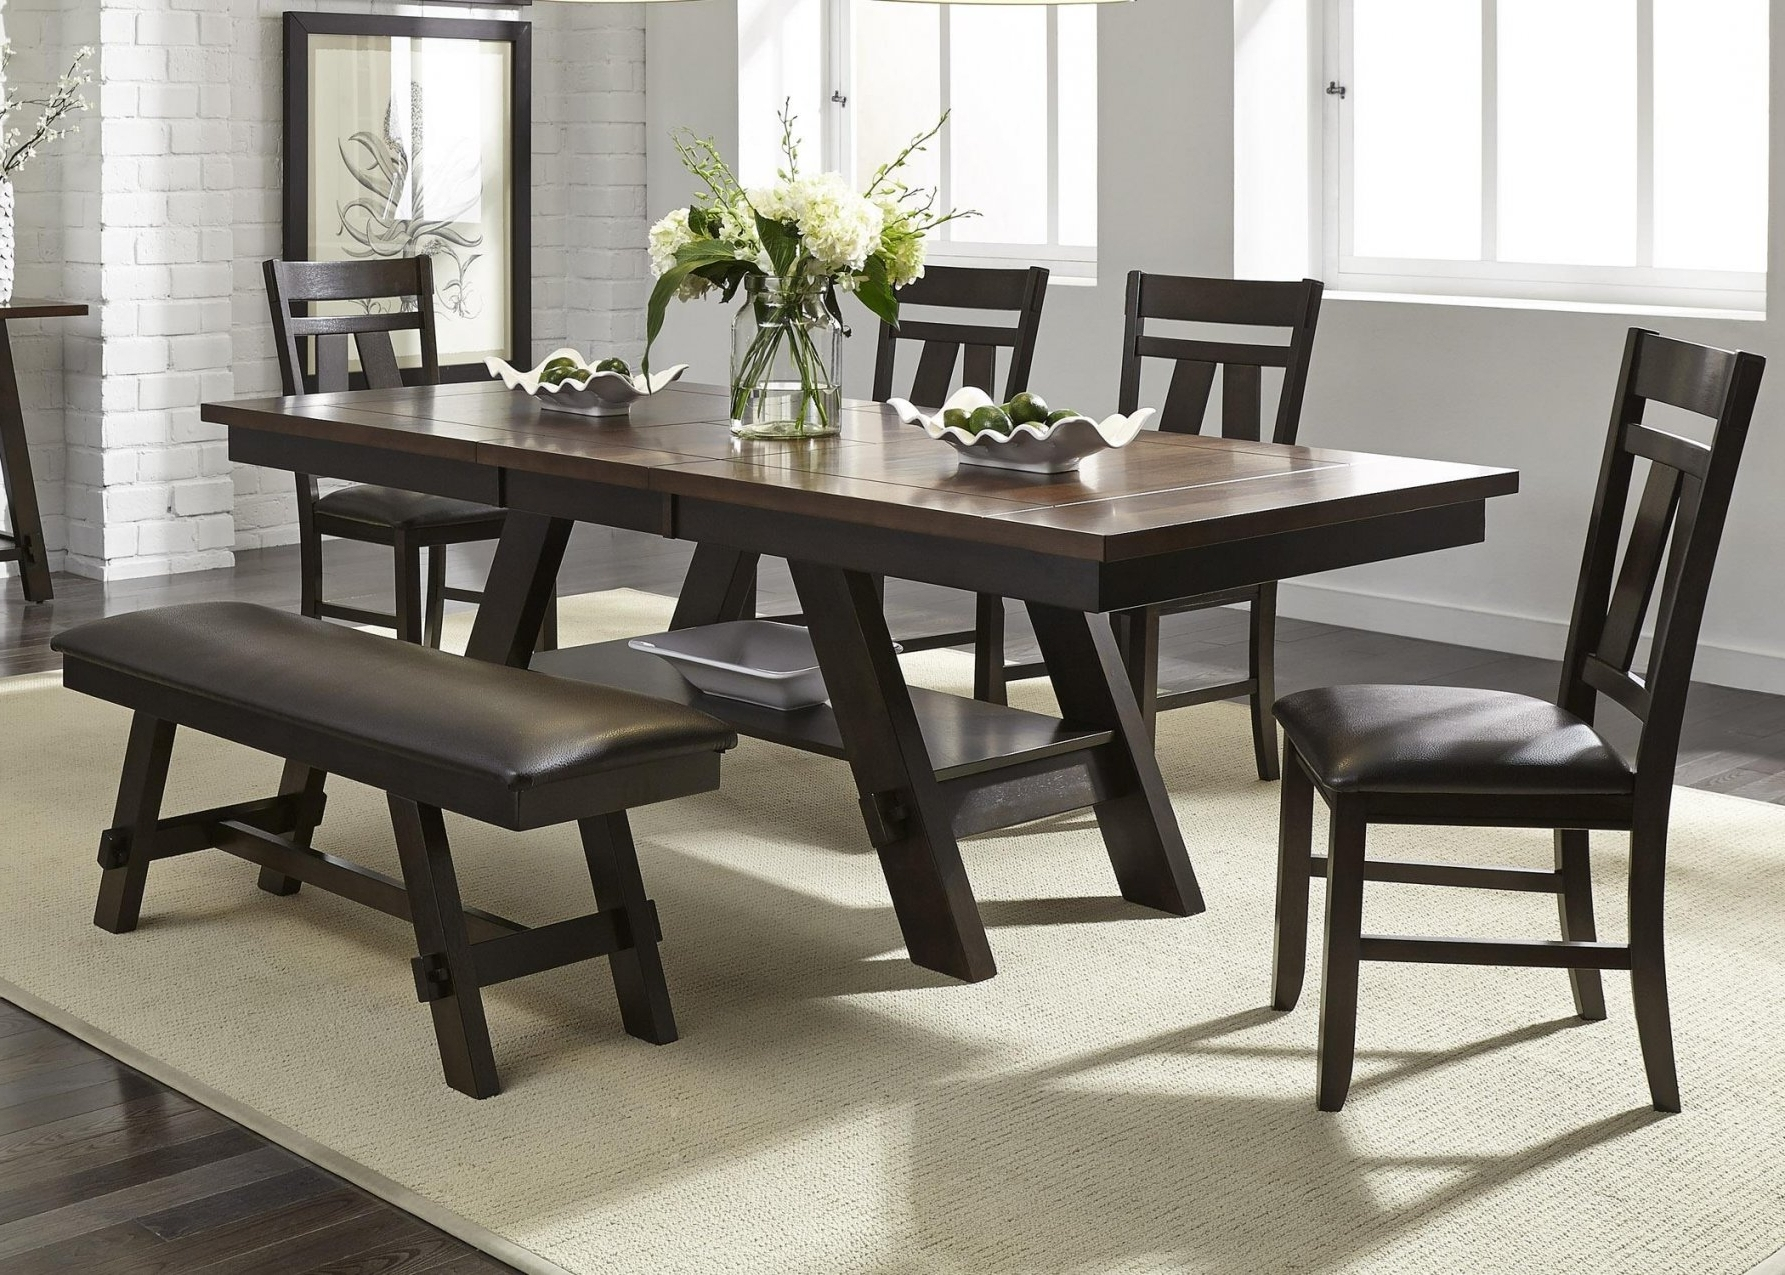 Preferred Partridge 7 Piece Dining Sets Regarding 6 Piece Dining Table Set – Castrophotos (View 21 of 25)